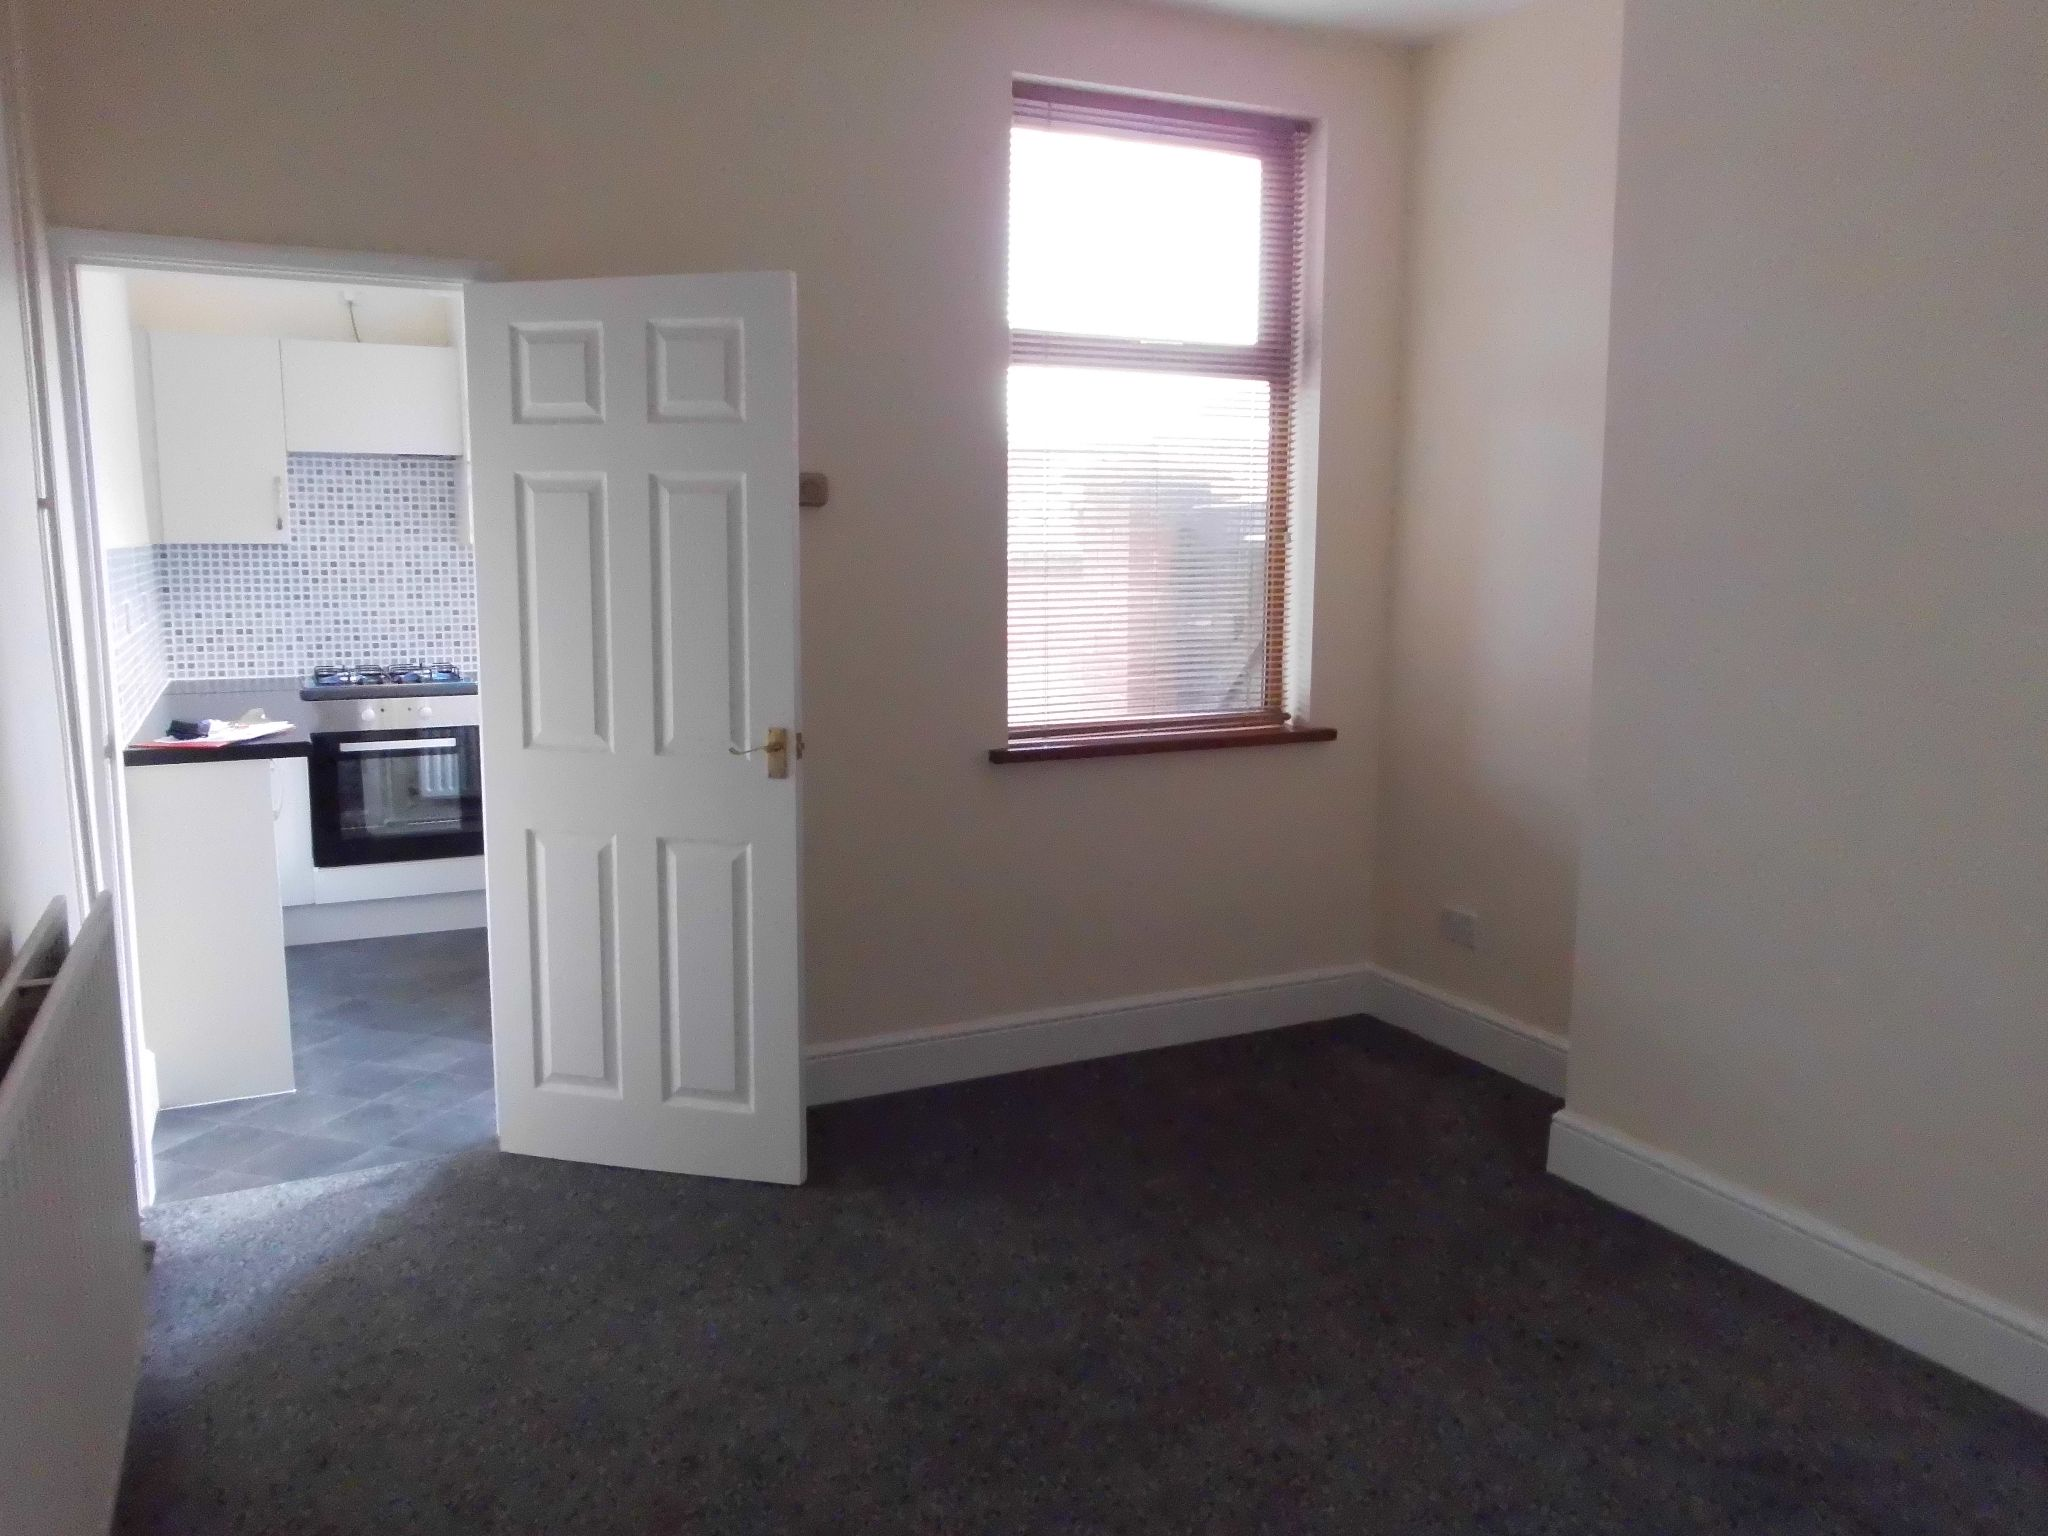 2 bedroom mid terraced house For Sale in Leicester - Photograph 3.